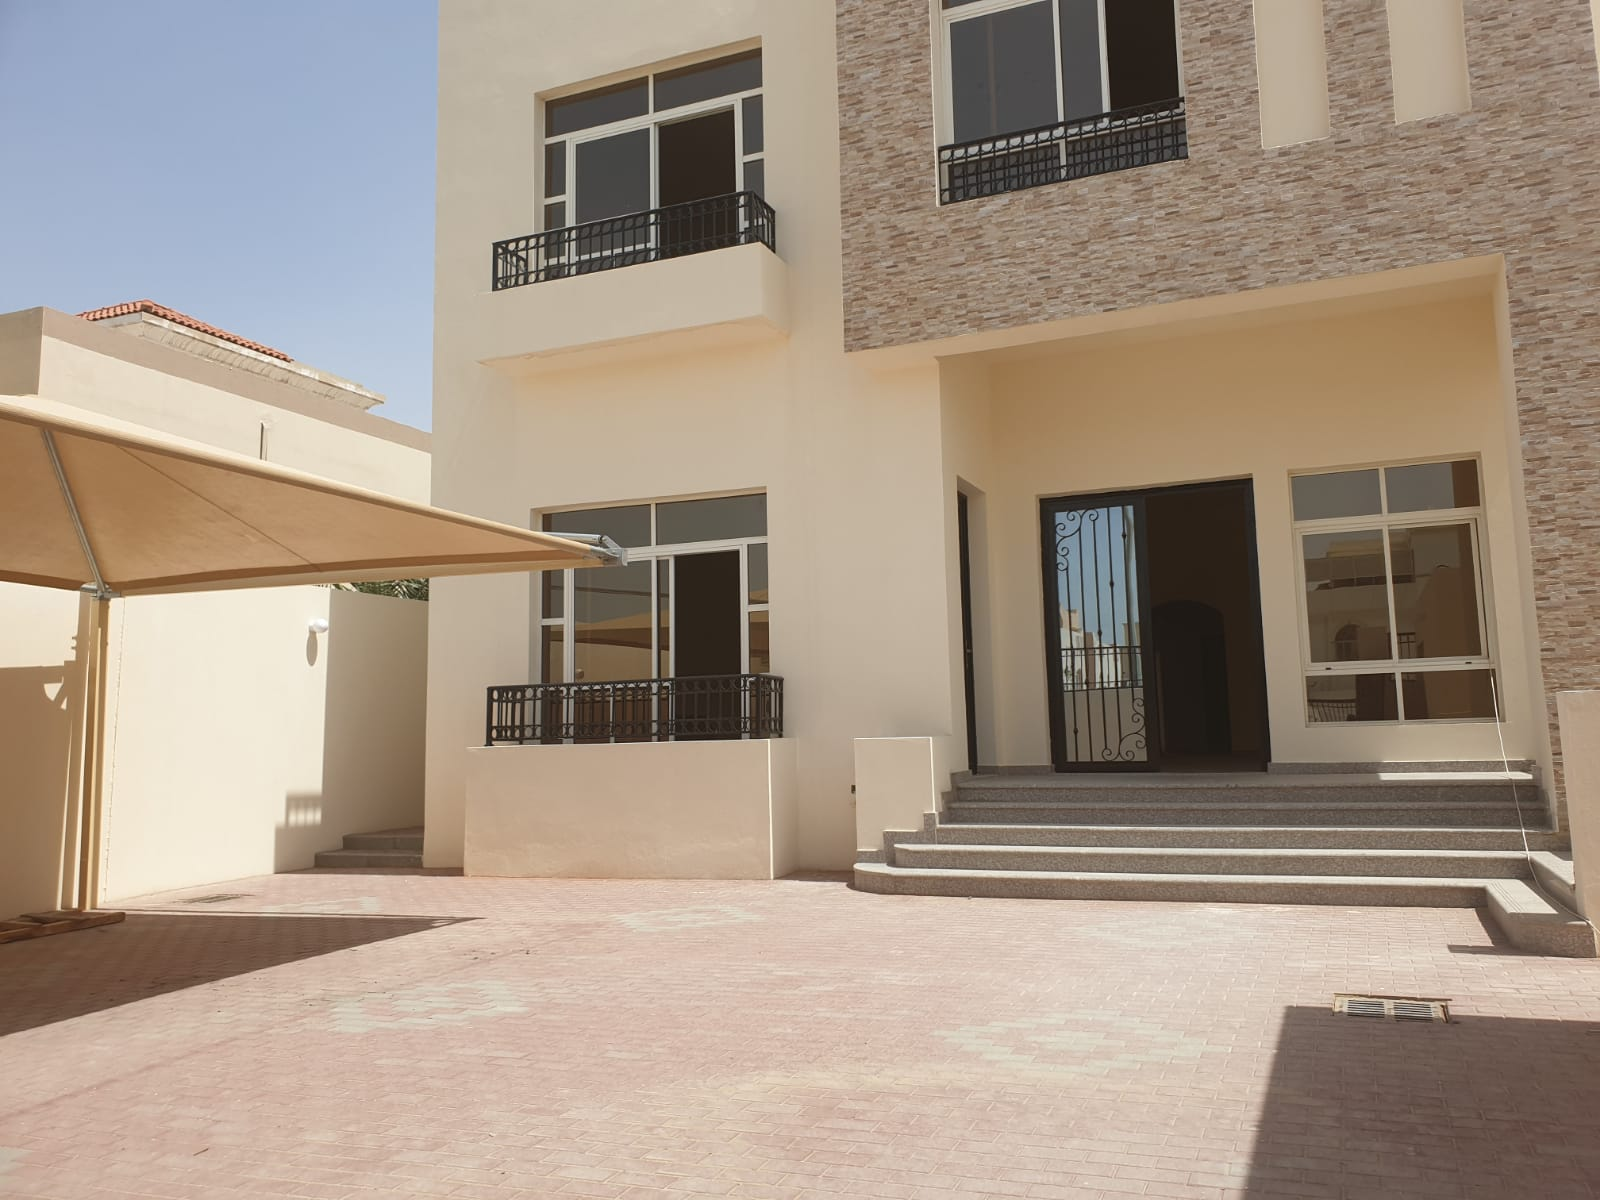 6 Bedroom Residential Villa Available for Rent in New Salata